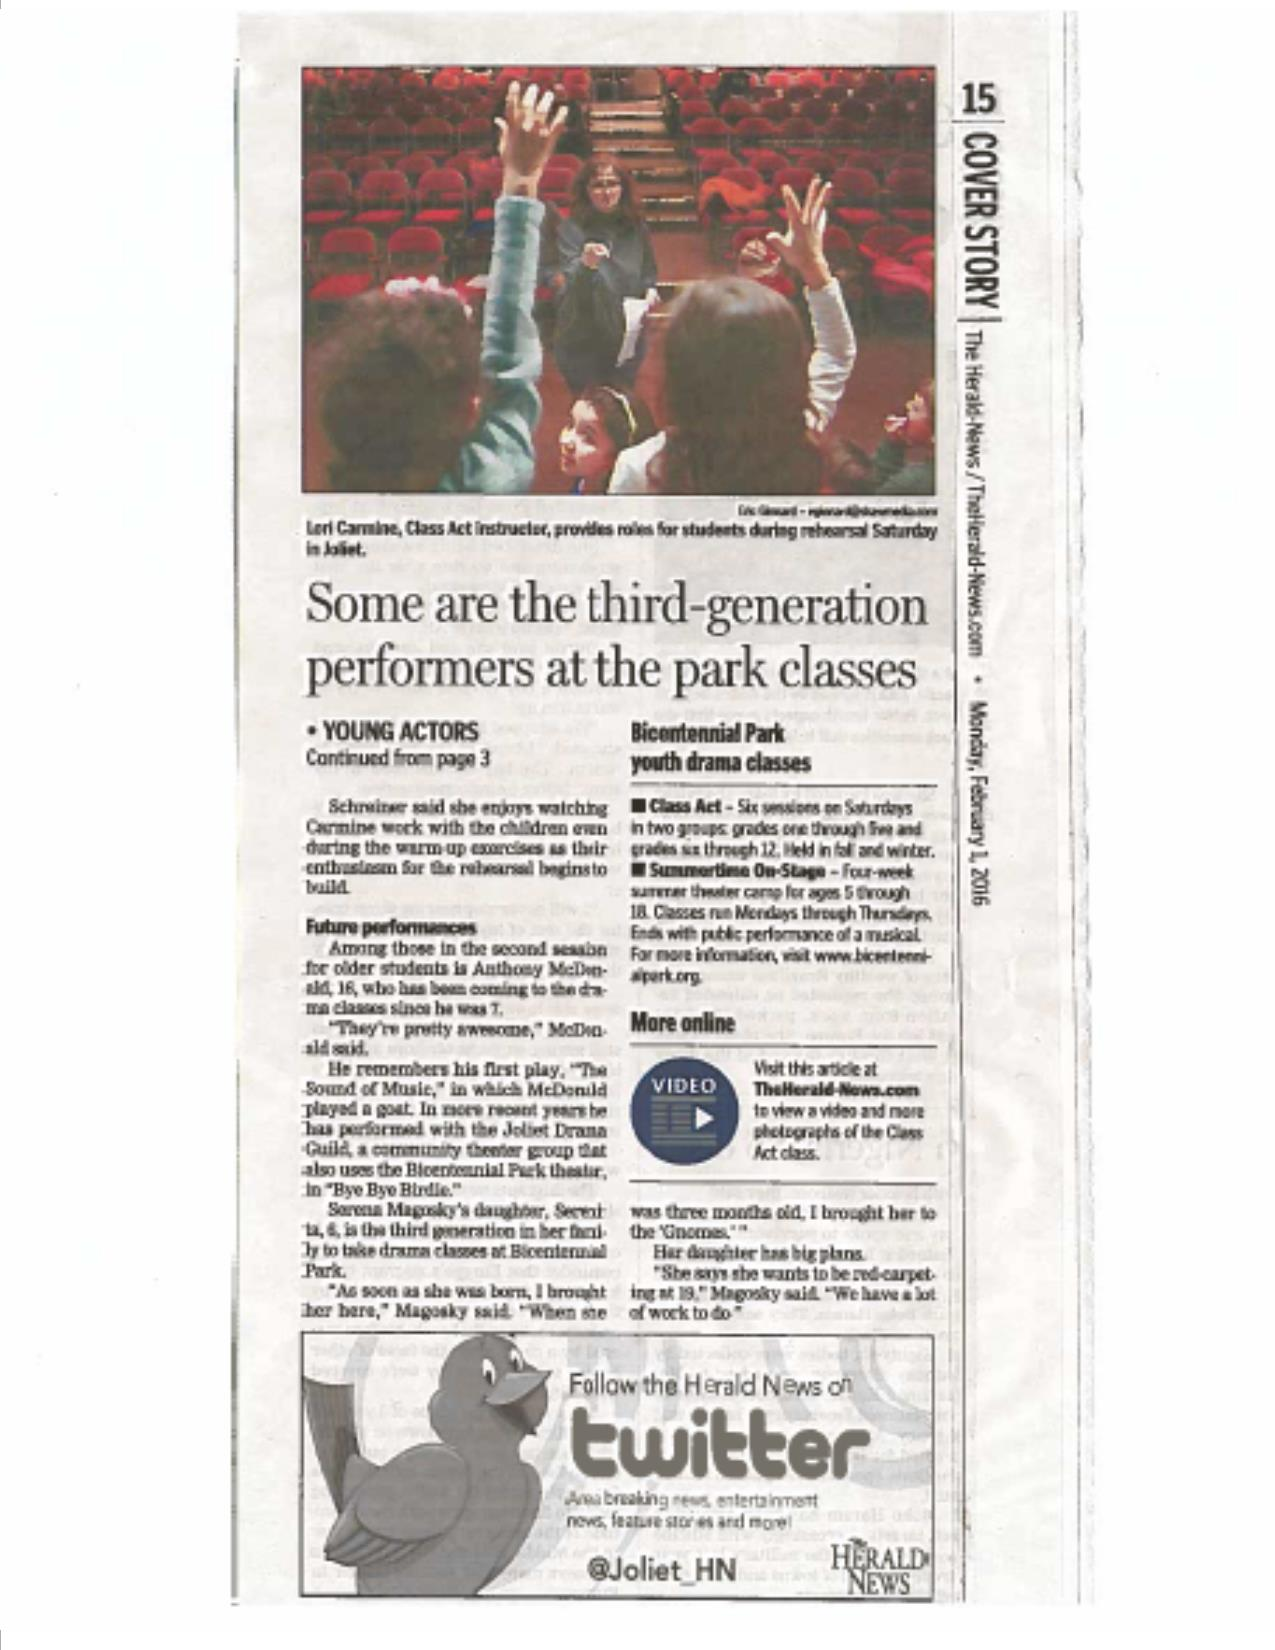 PARK'S DRAMA CLASSES feature story in The Herald-News 2/1/16